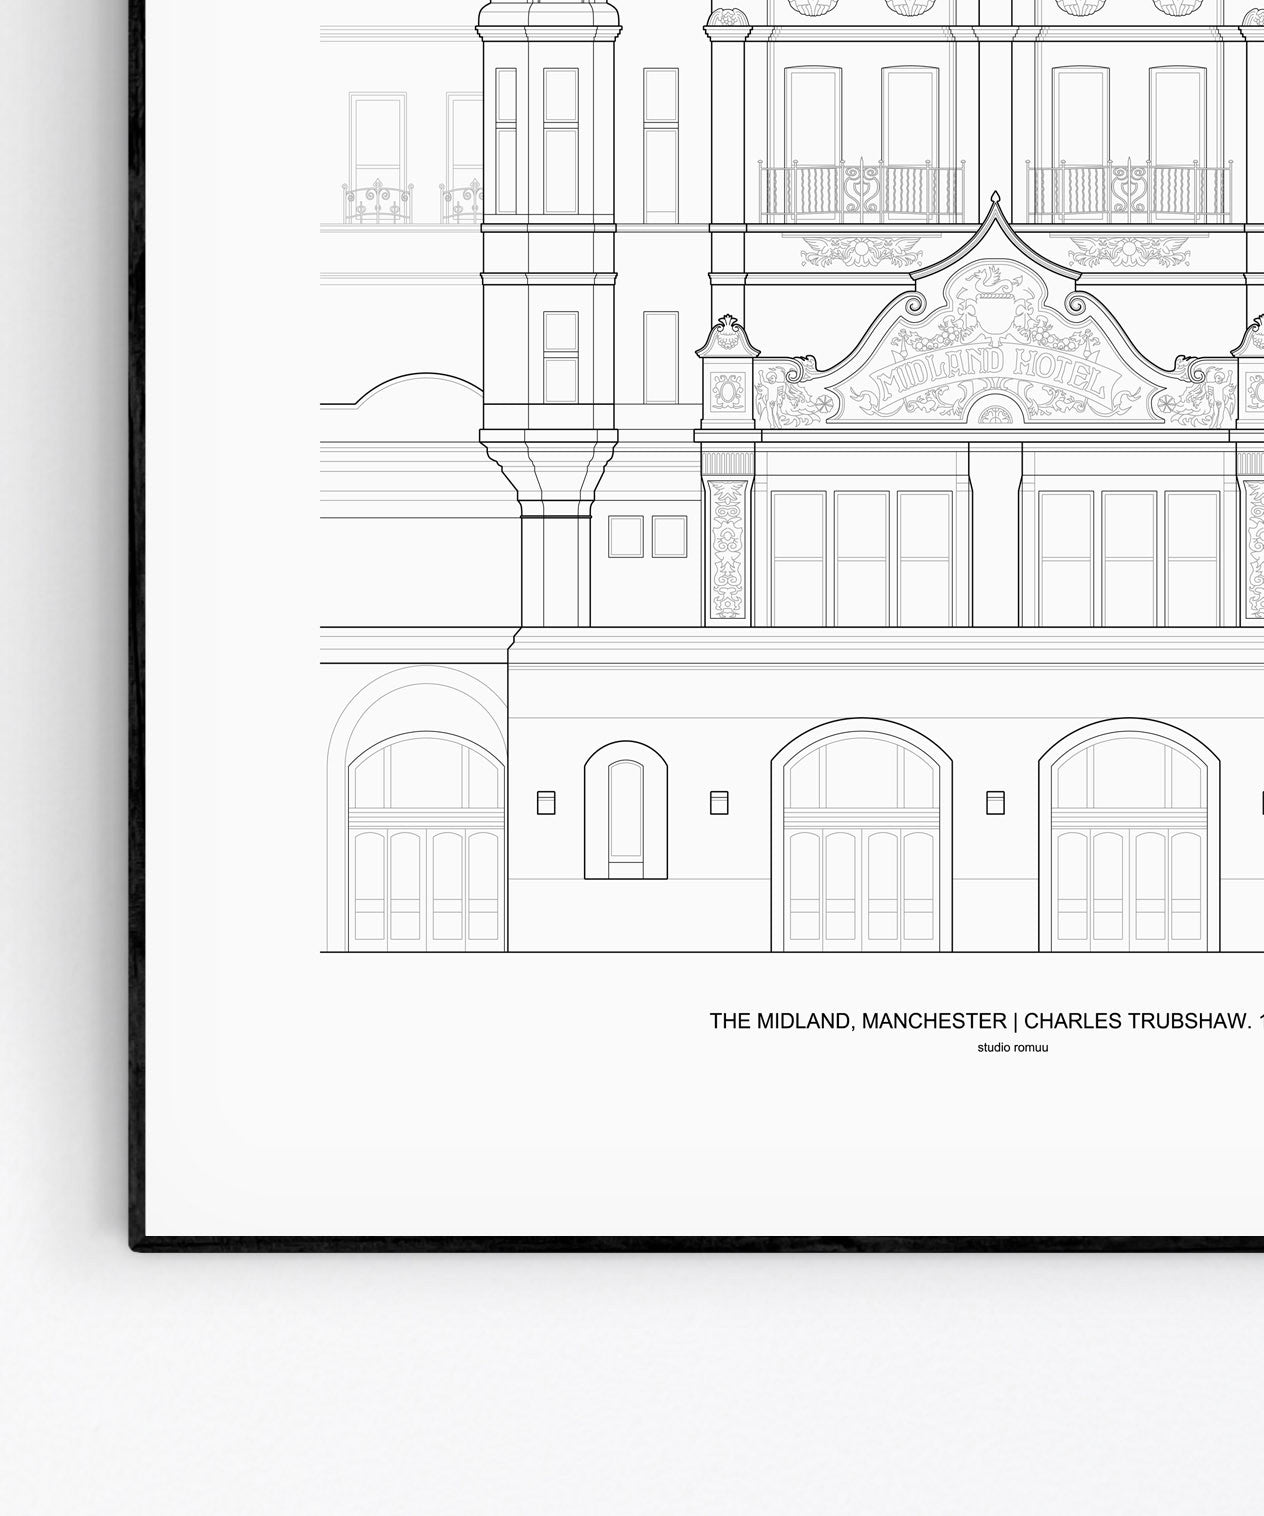 The Midland Hotel Architecture Print - Detail